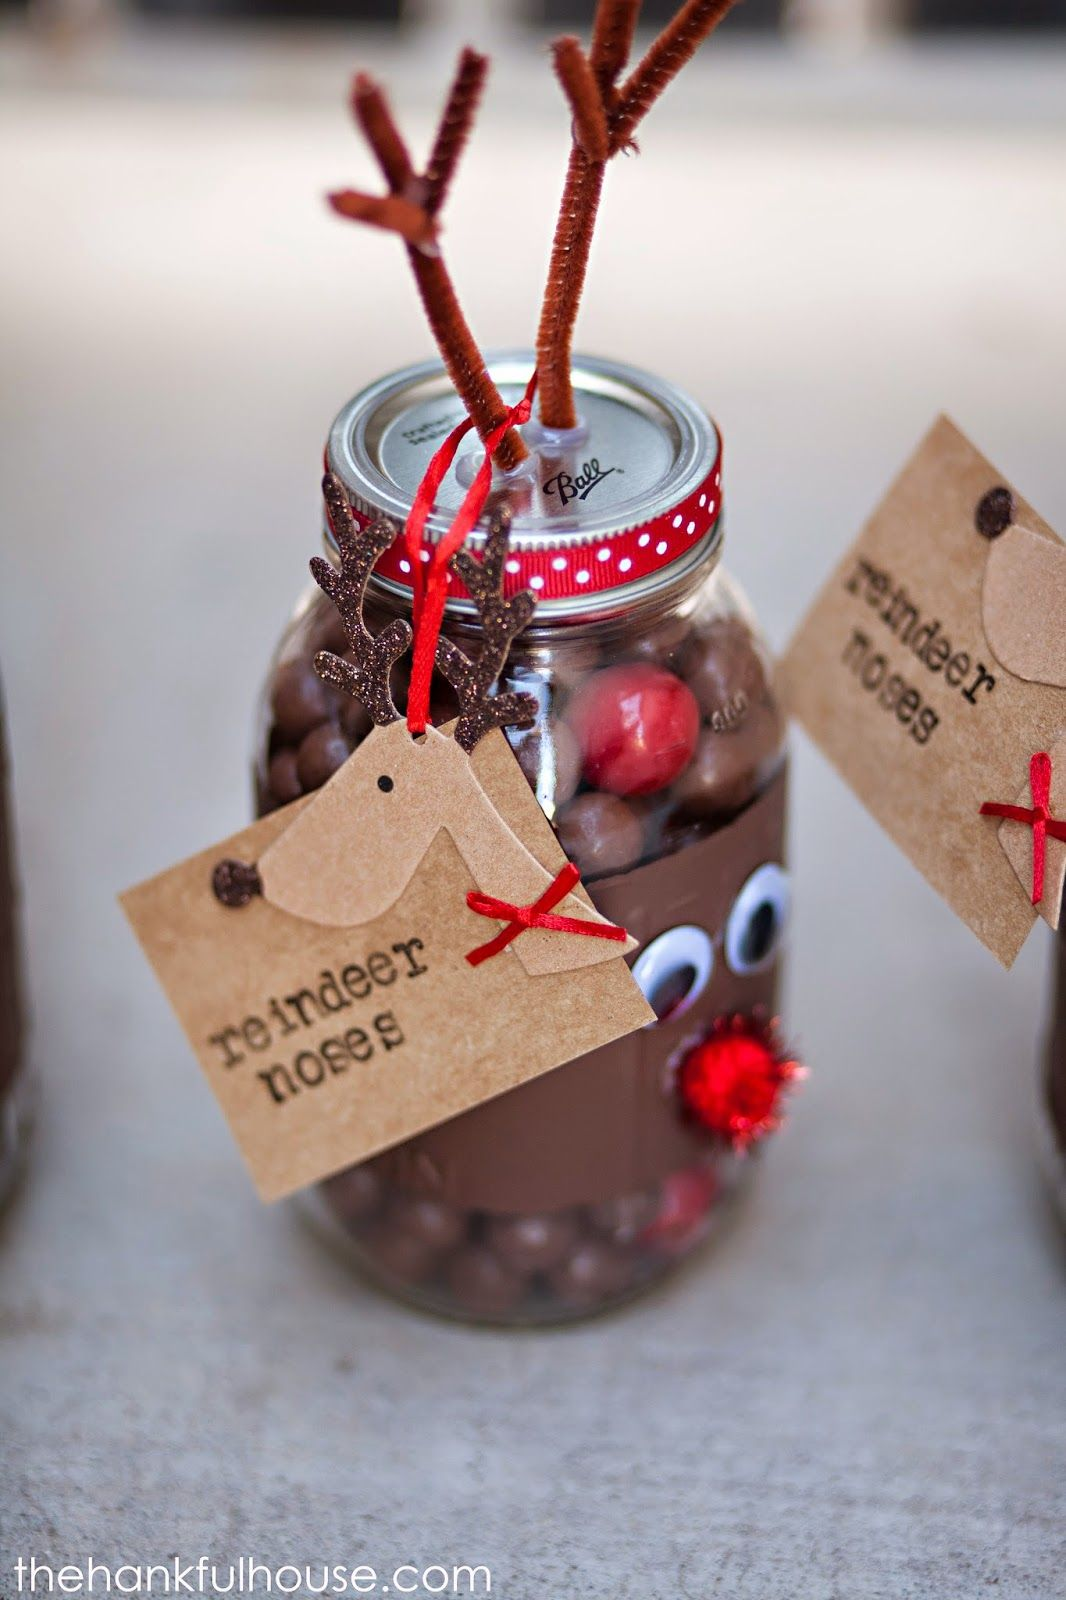 Pin by Diana Alcaraz on Pine Cones | Pinterest | Christmas, Gifts ...